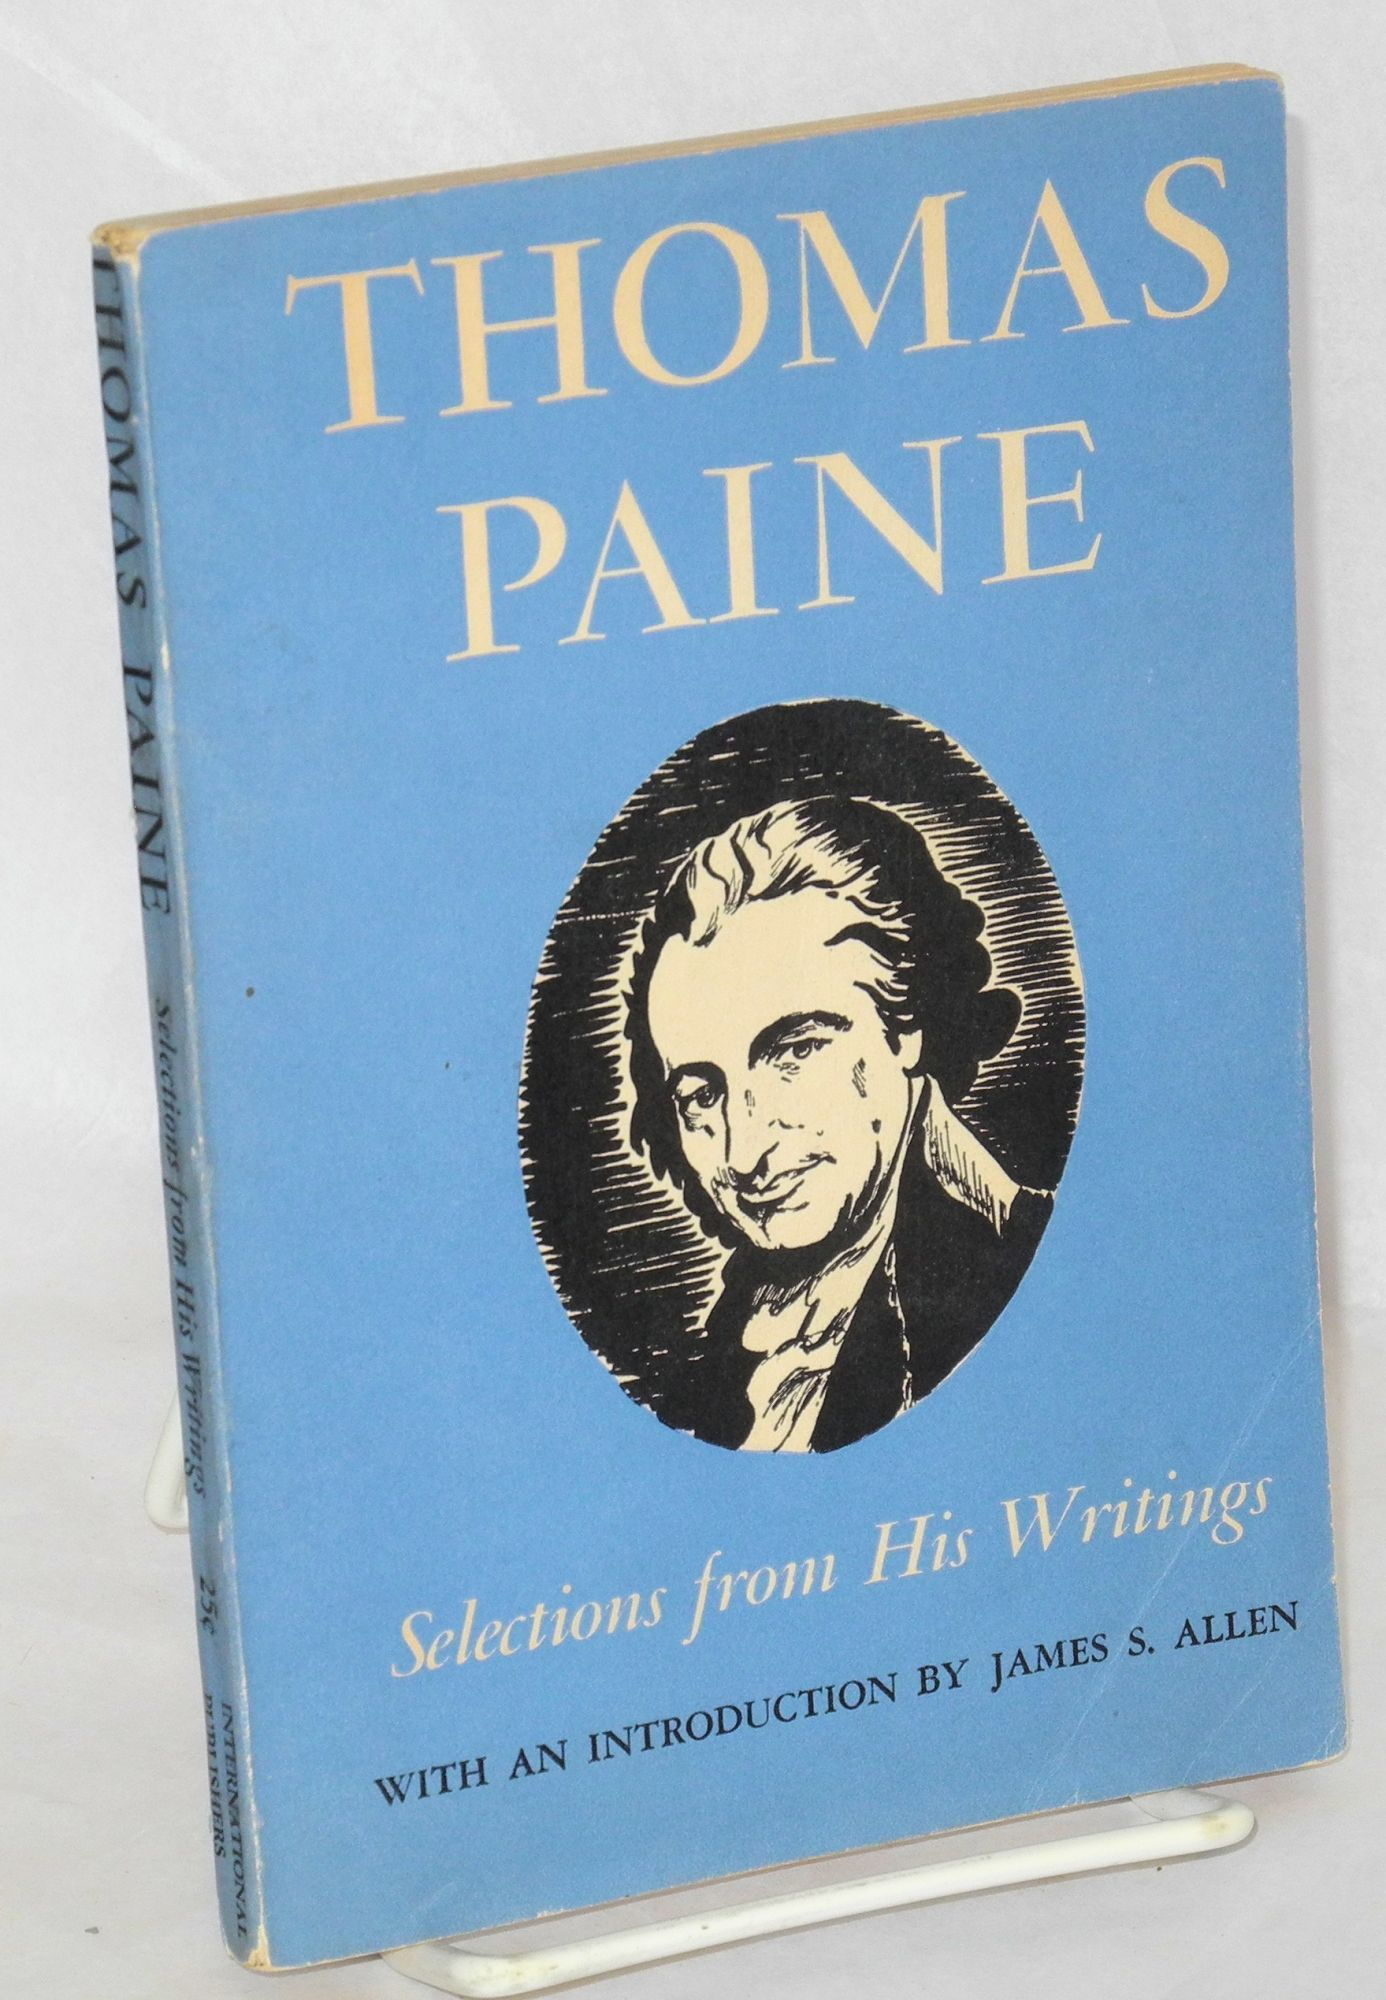 an introduction to the background of thomas paine In common sense, thomas paine used several arguments to convince his readers of the need to rebel against english rule he used this pamphlet as a medium to present not only facts, but shared points of view between the patriot colonists it is said that it is in our human nature to form.